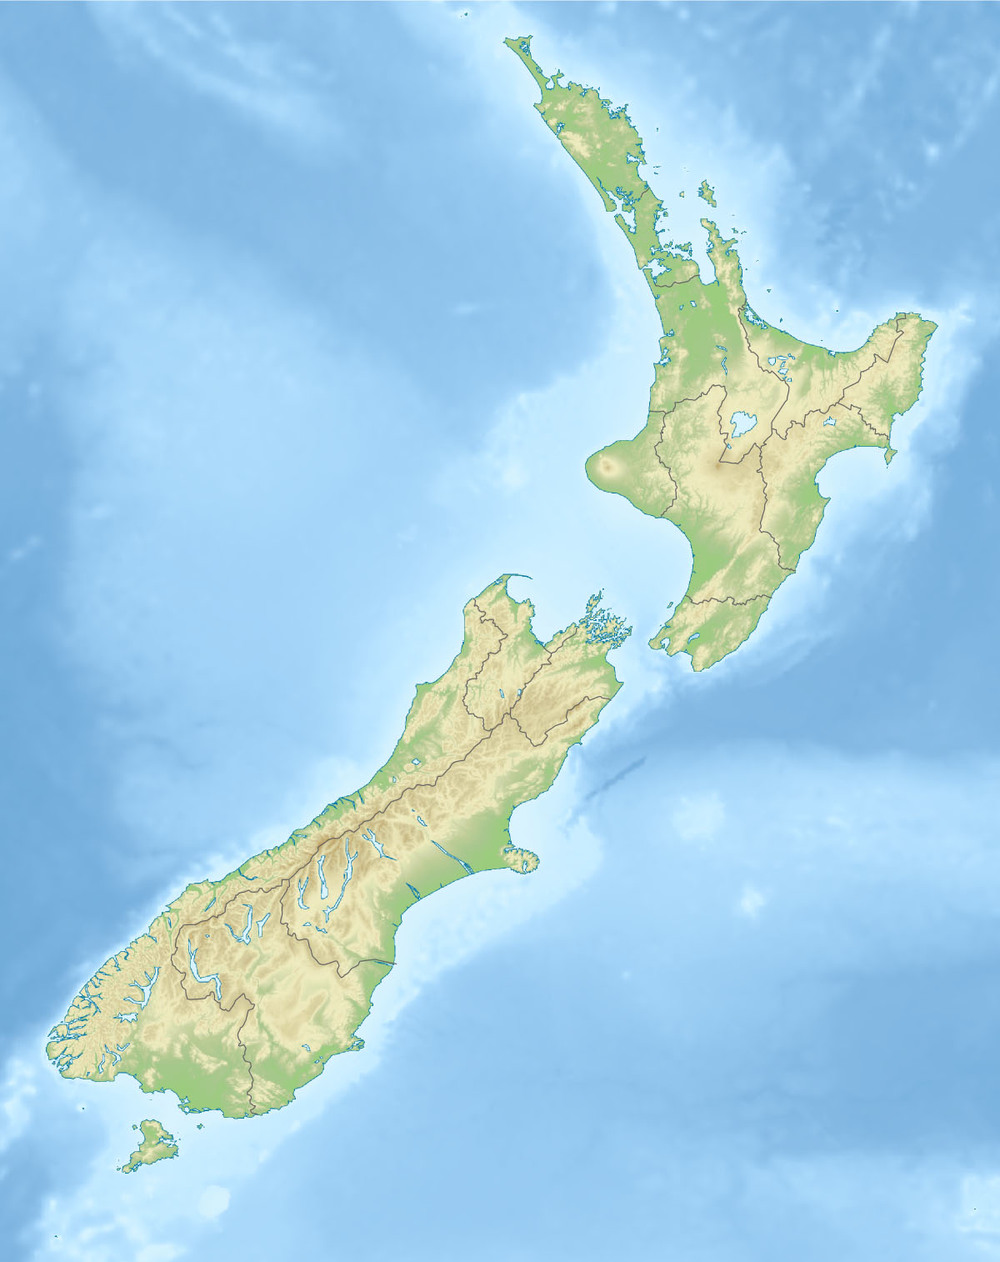 New_Zealand_relief_map.jpg